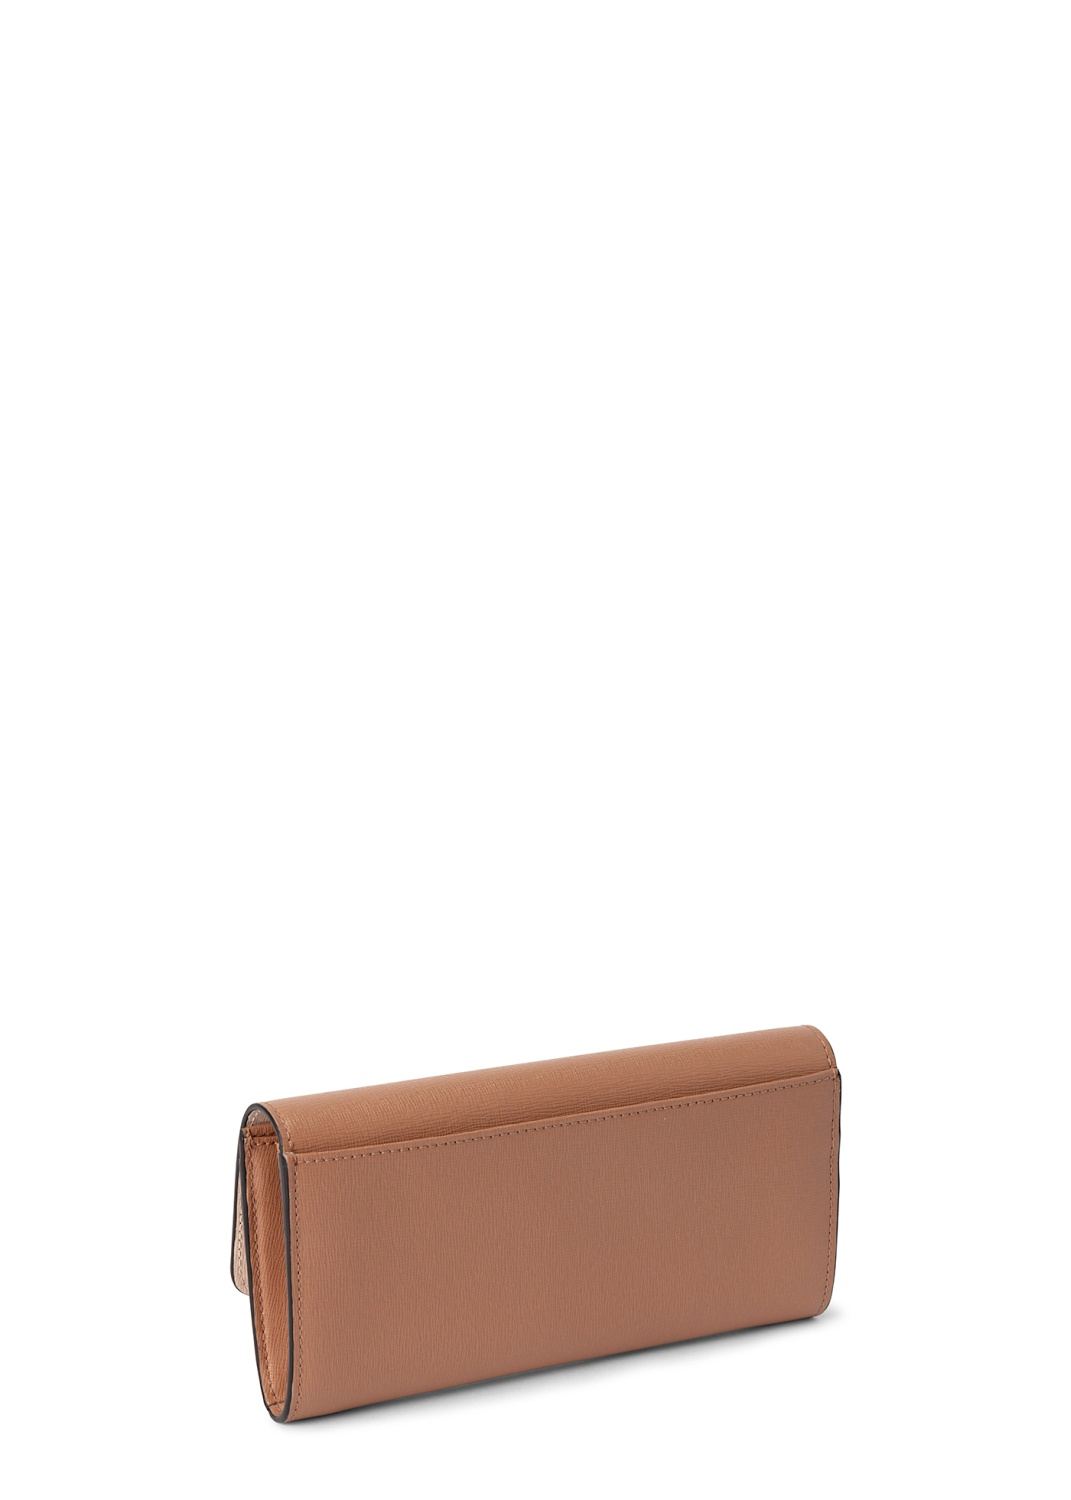 FURLA BABYLON CONTINENTAL WALLET SLIM image number 1